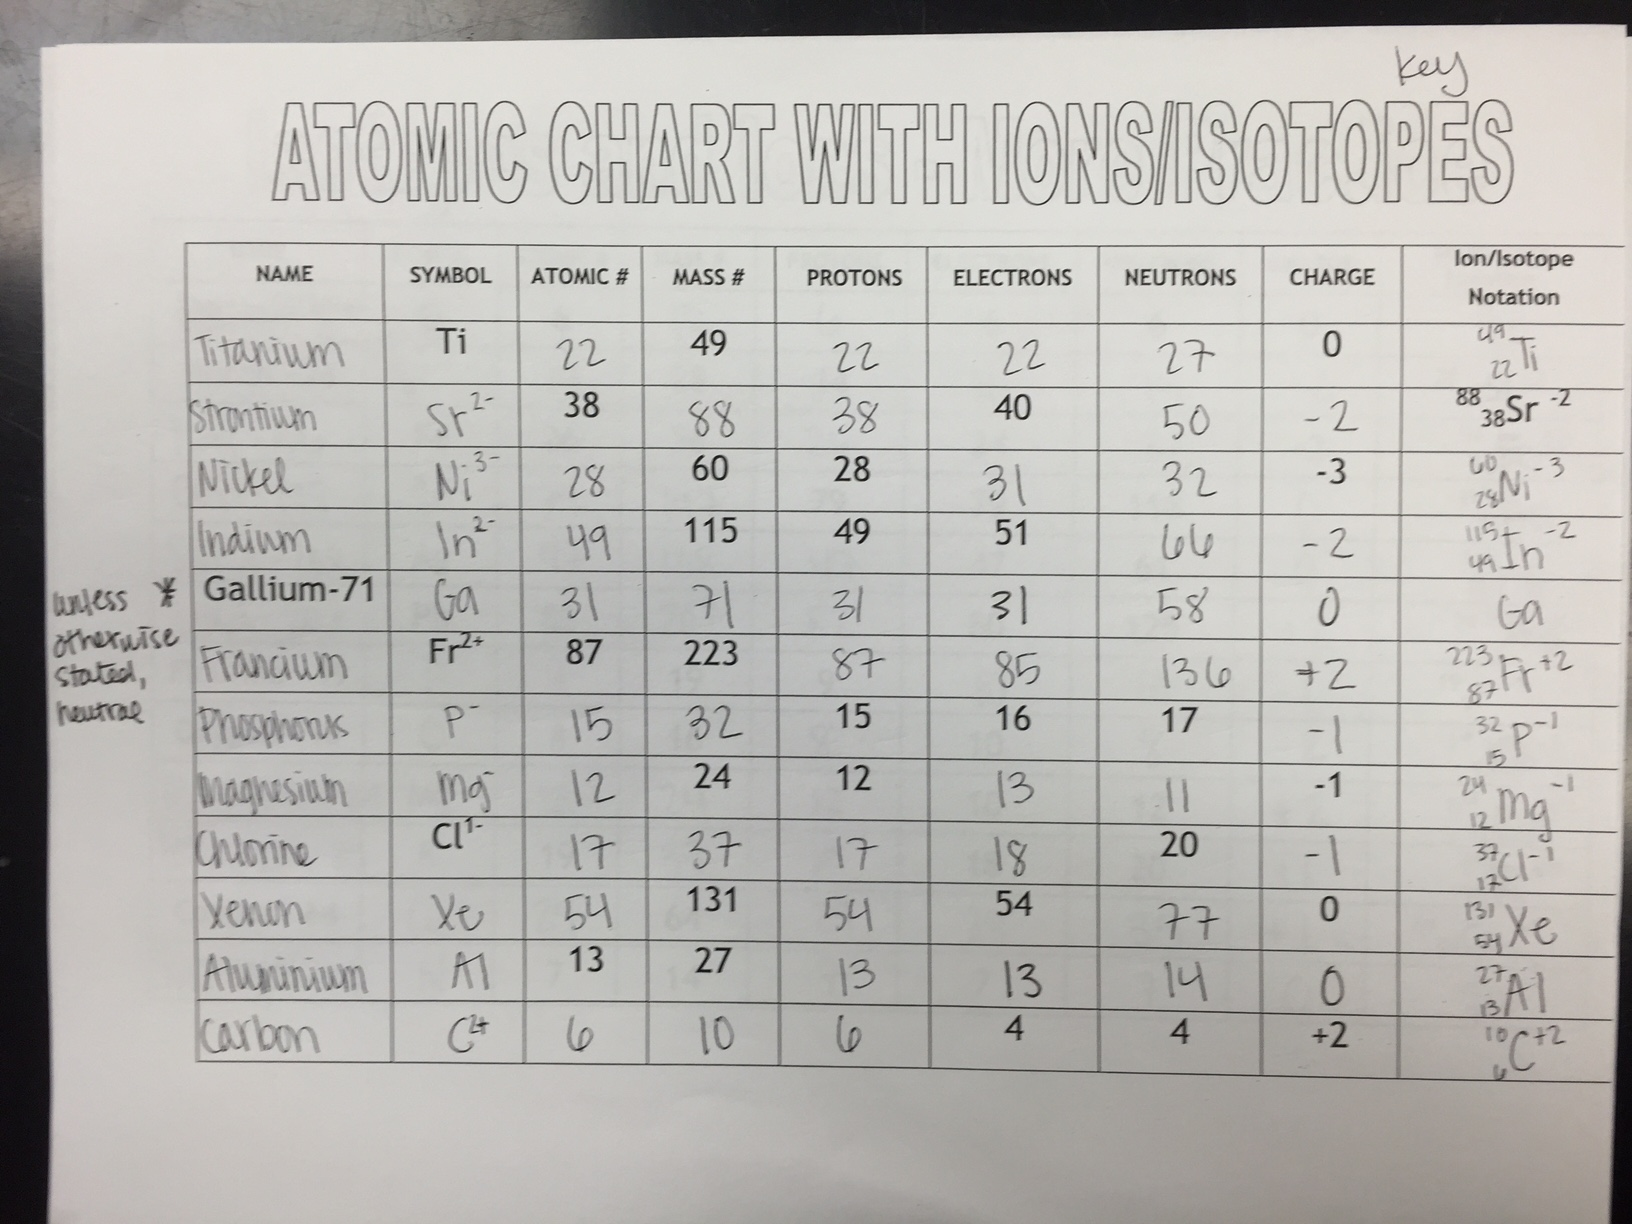 Free Worksheet Ions And Isotopes Worksheet unit 2 atomic structure ms holls physical science class chart with ionsisotopes answer key